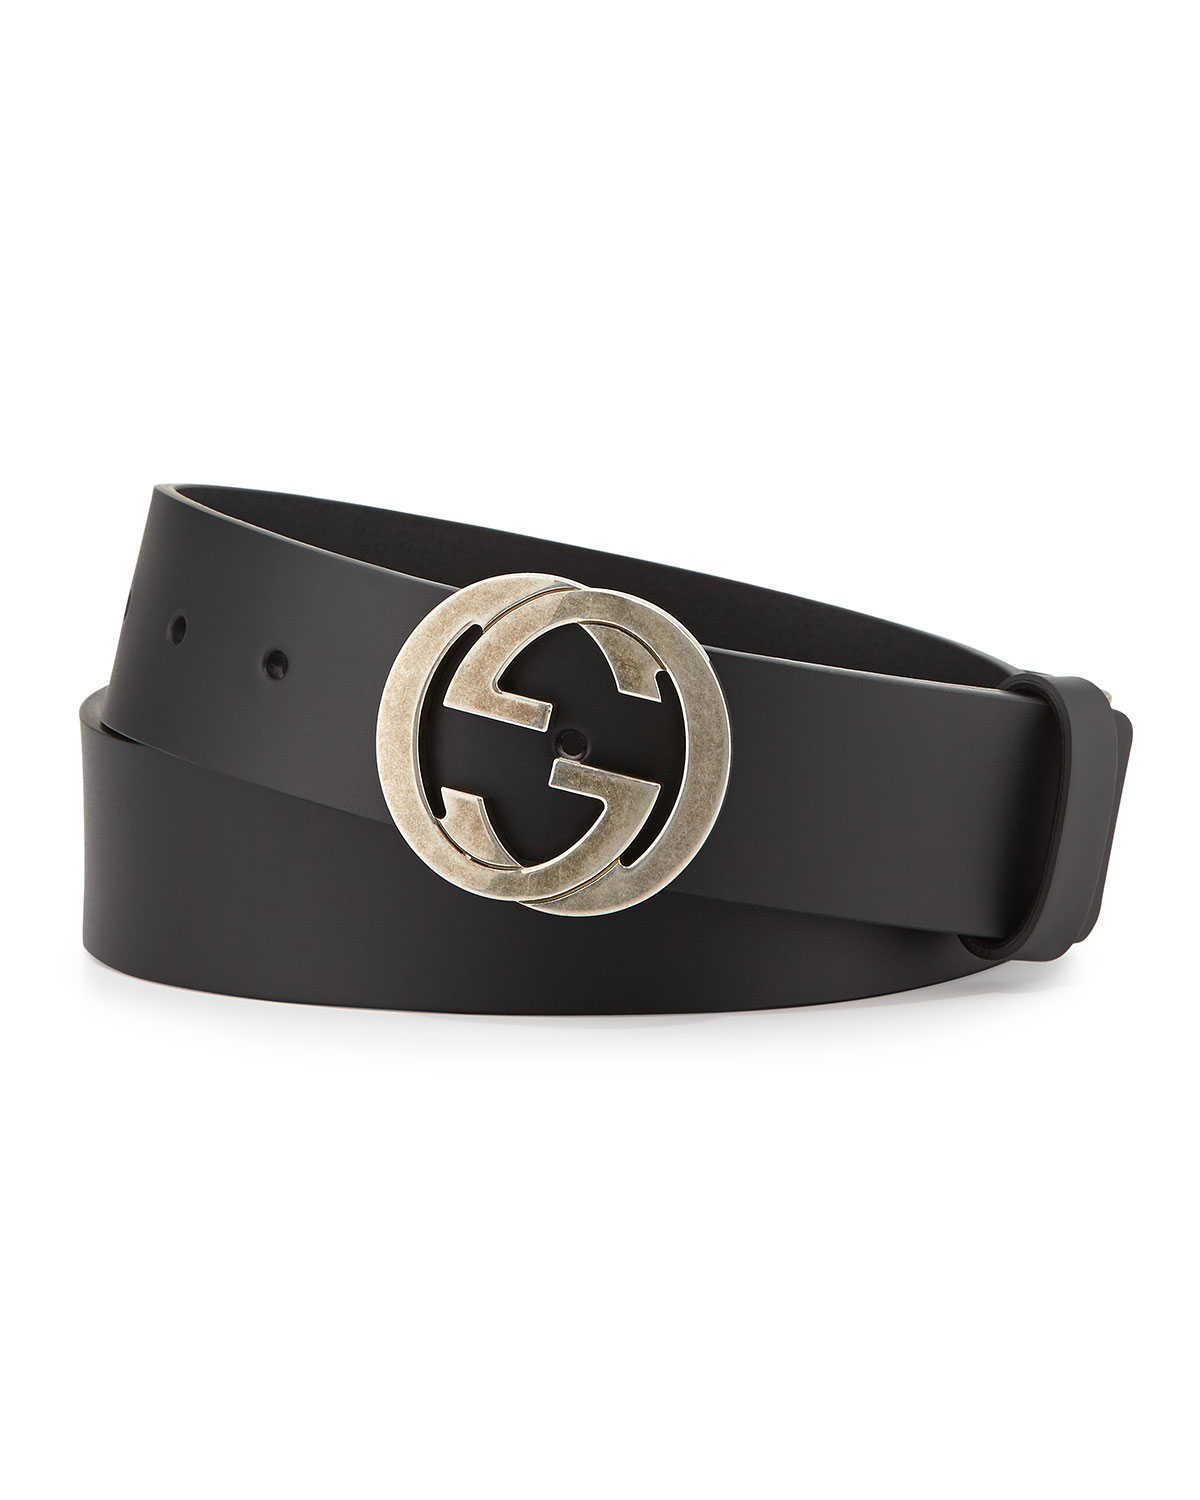 4529bf01cff Gucci Leather Belt with Interlocking G Buckle